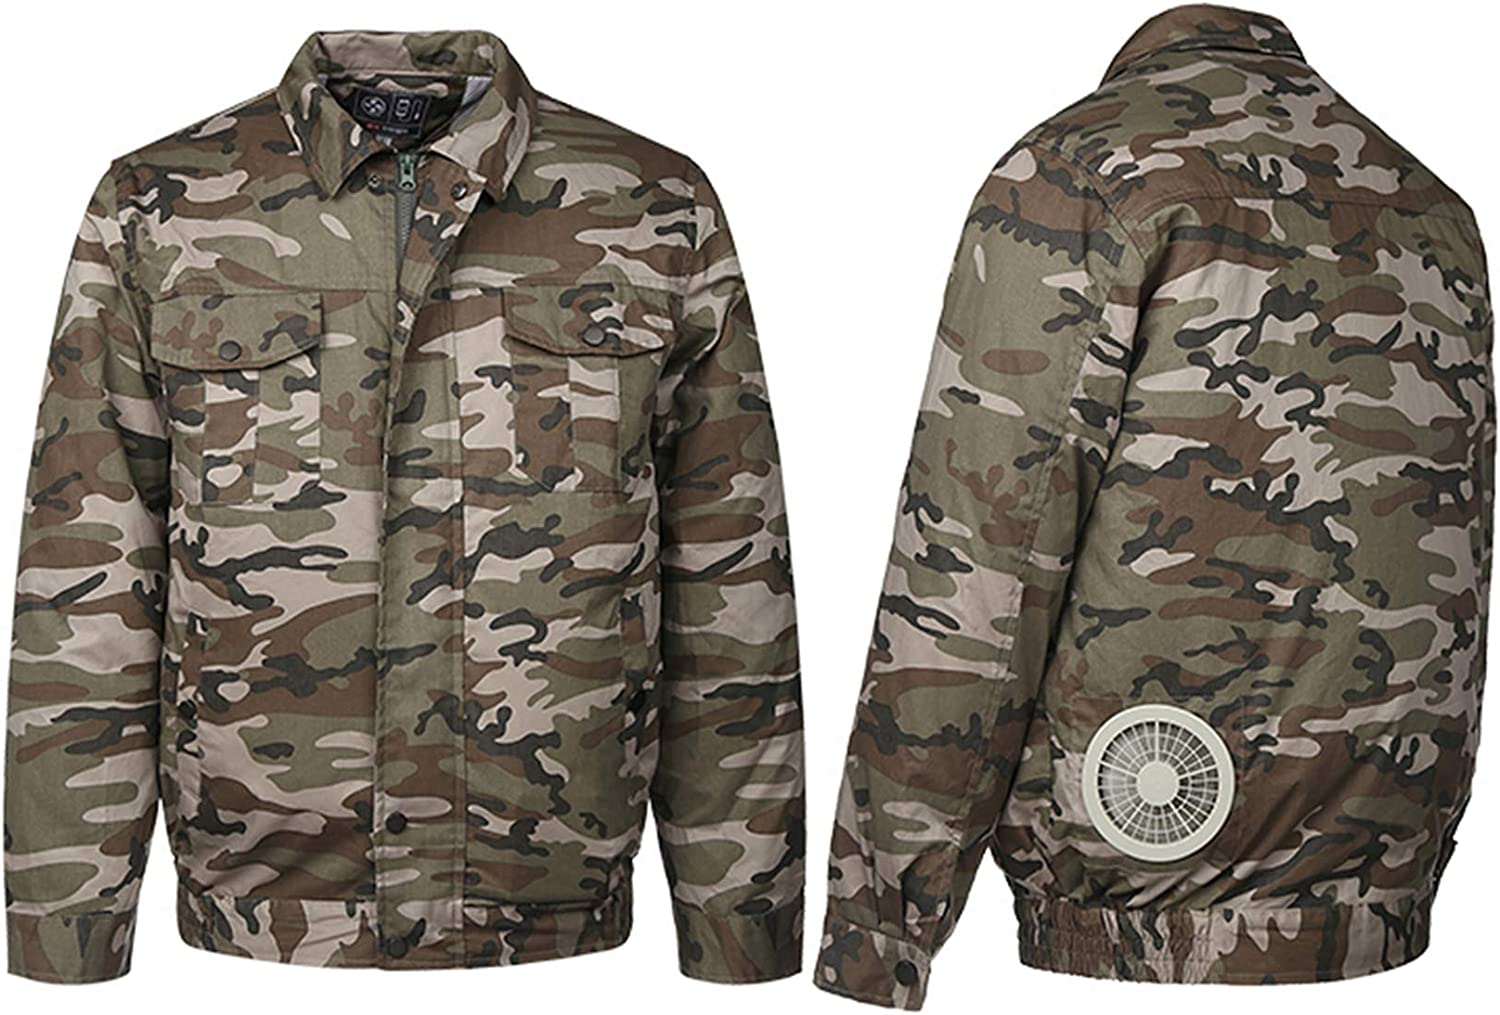 Cooling air Conditioned Jacket with Two Fans to Offer a Cooling for Working Outside in Summer